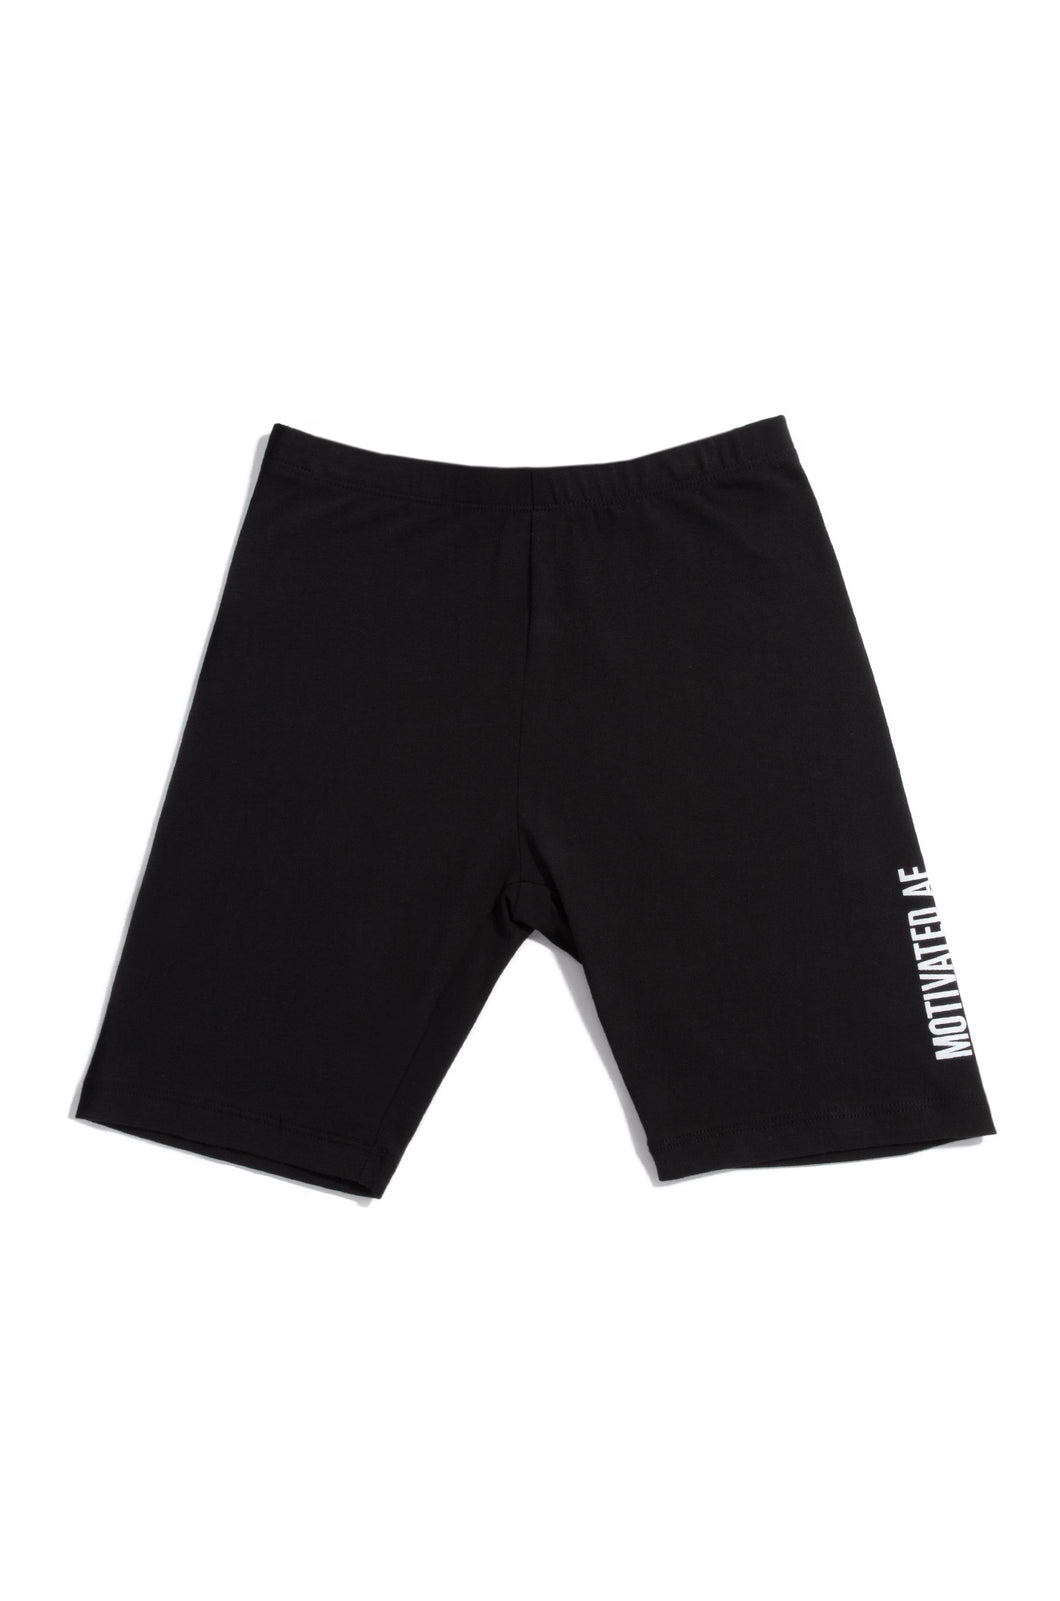 Motivated AF Biker Short - Black